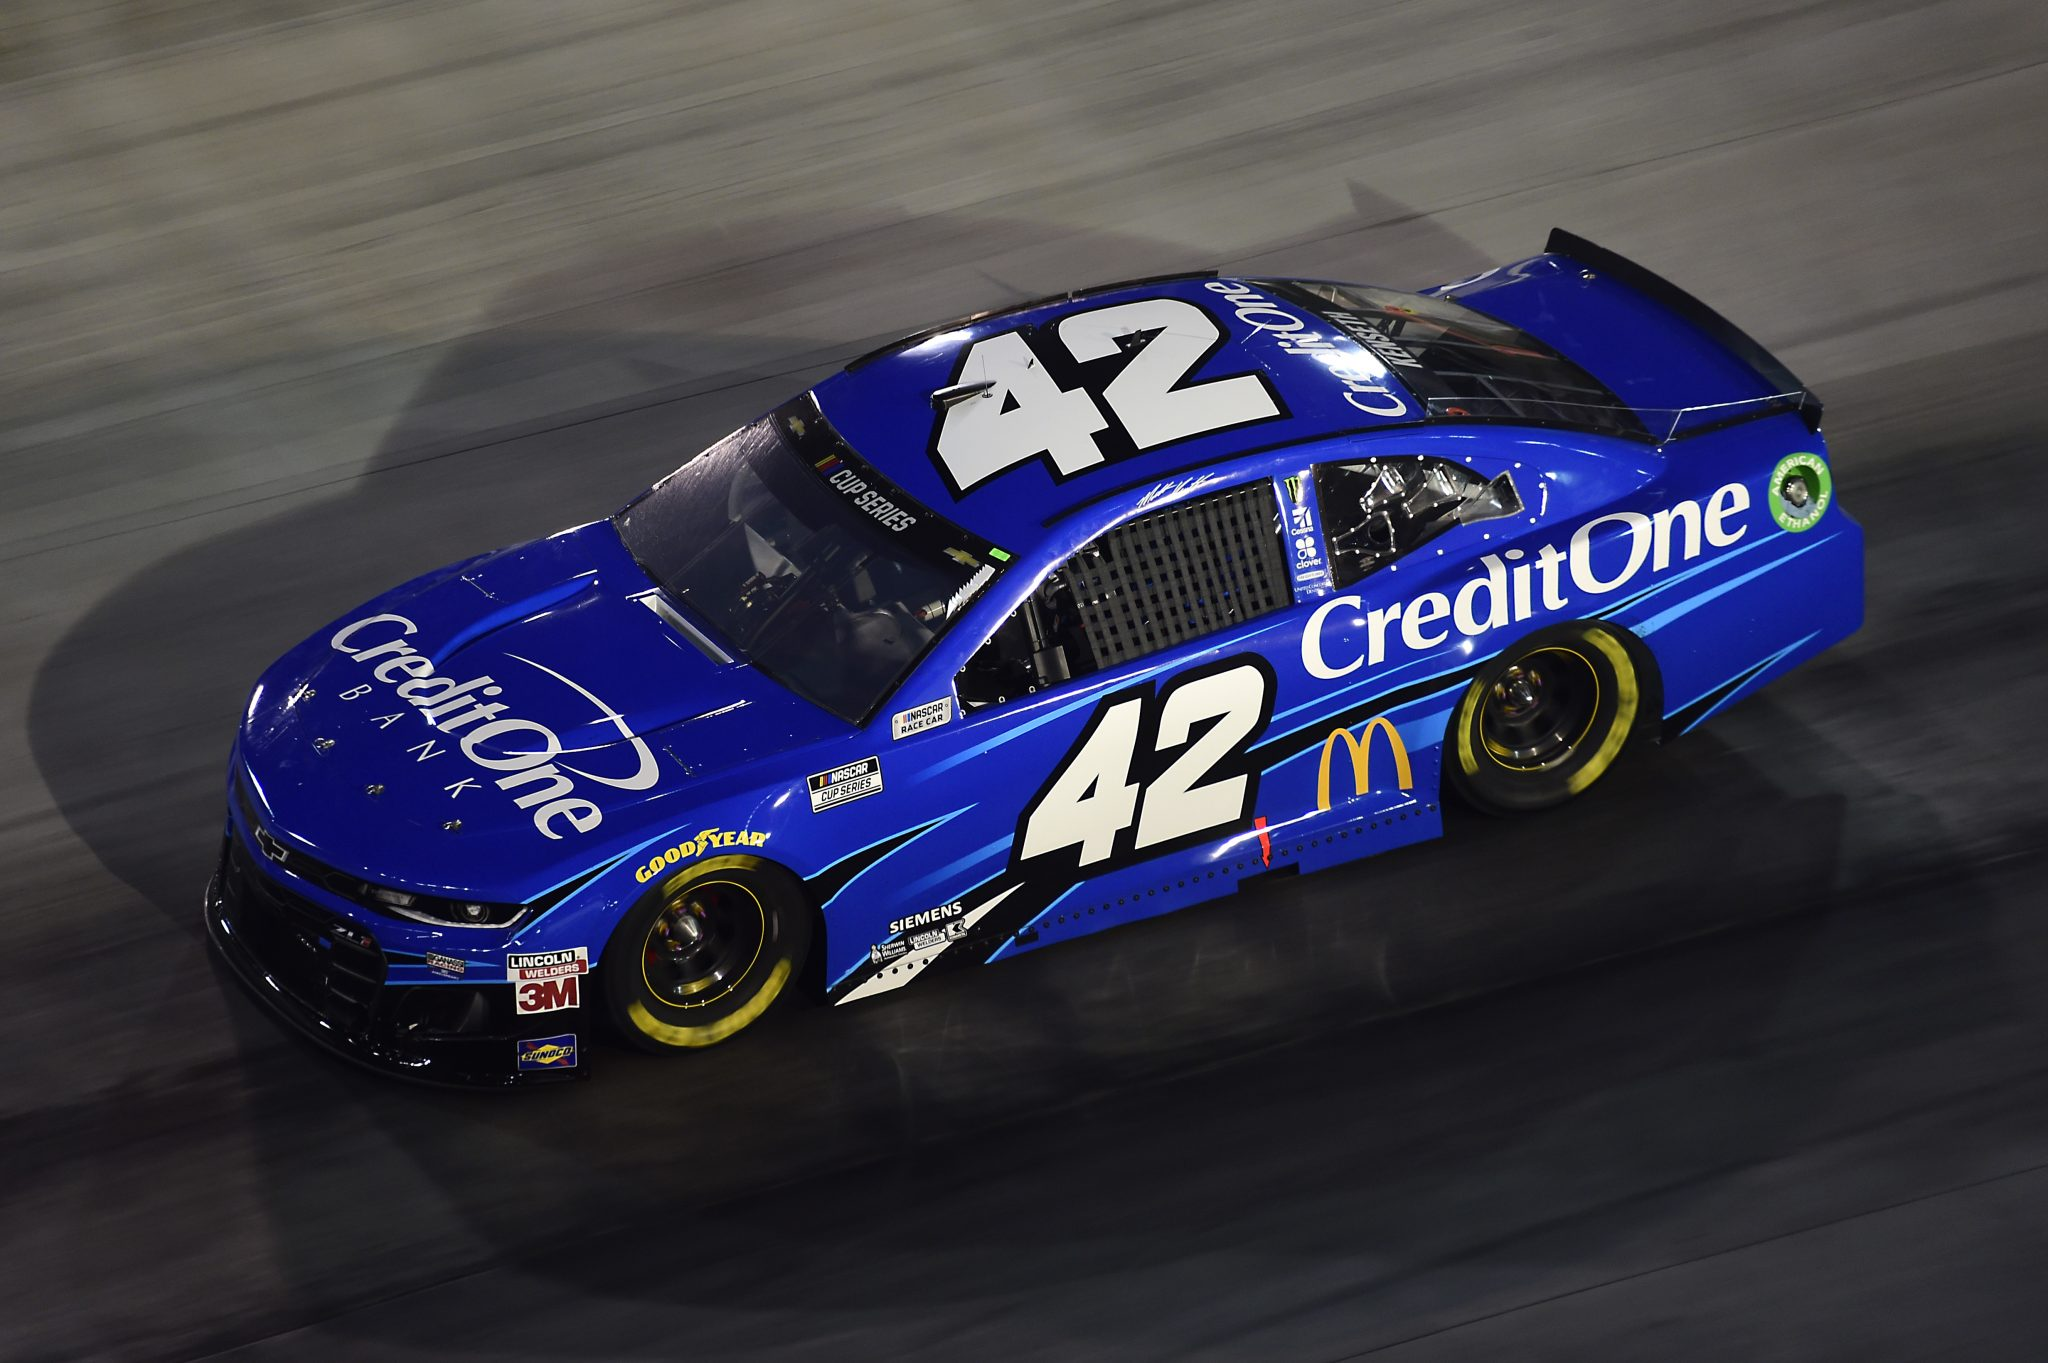 BRISTOL, TENNESSEE - SEPTEMBER 19: Matt Kenseth, driver of the #42 Credit One Bank Chevrolet, drives during the NASCAR Cup Series Bass Pro Shops Night Race at Bristol Motor Speedway on September 19, 2020 in Bristol, Tennessee. (Photo by Jared C. Tilton/Getty Images) | Getty Images